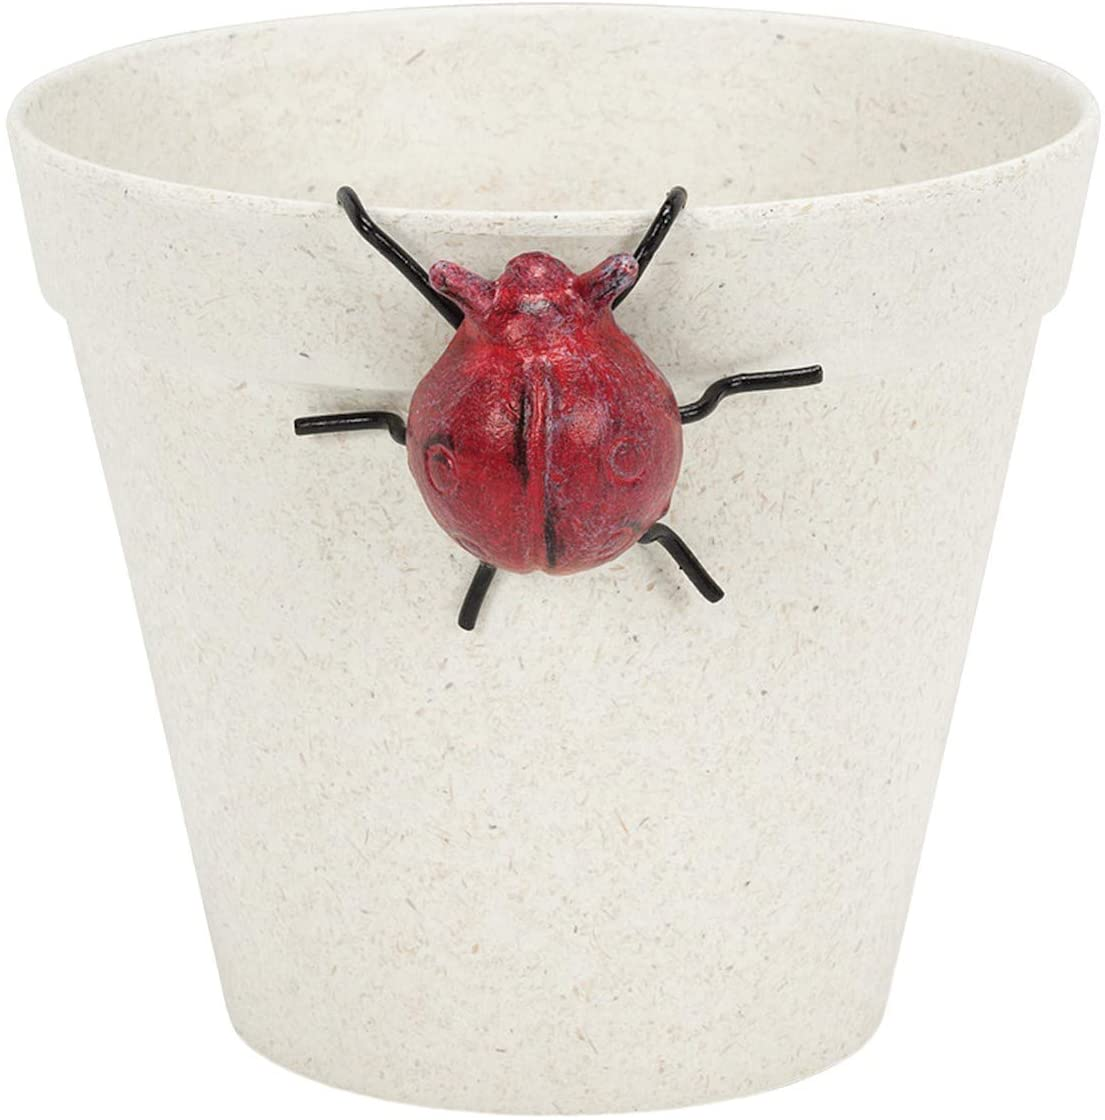 Abbot Ladybug Pot Hanger Figurine - Indoor Outdoor Cast Iron Insect Potted Plant Sculpture, Home and Garden Decor Accent